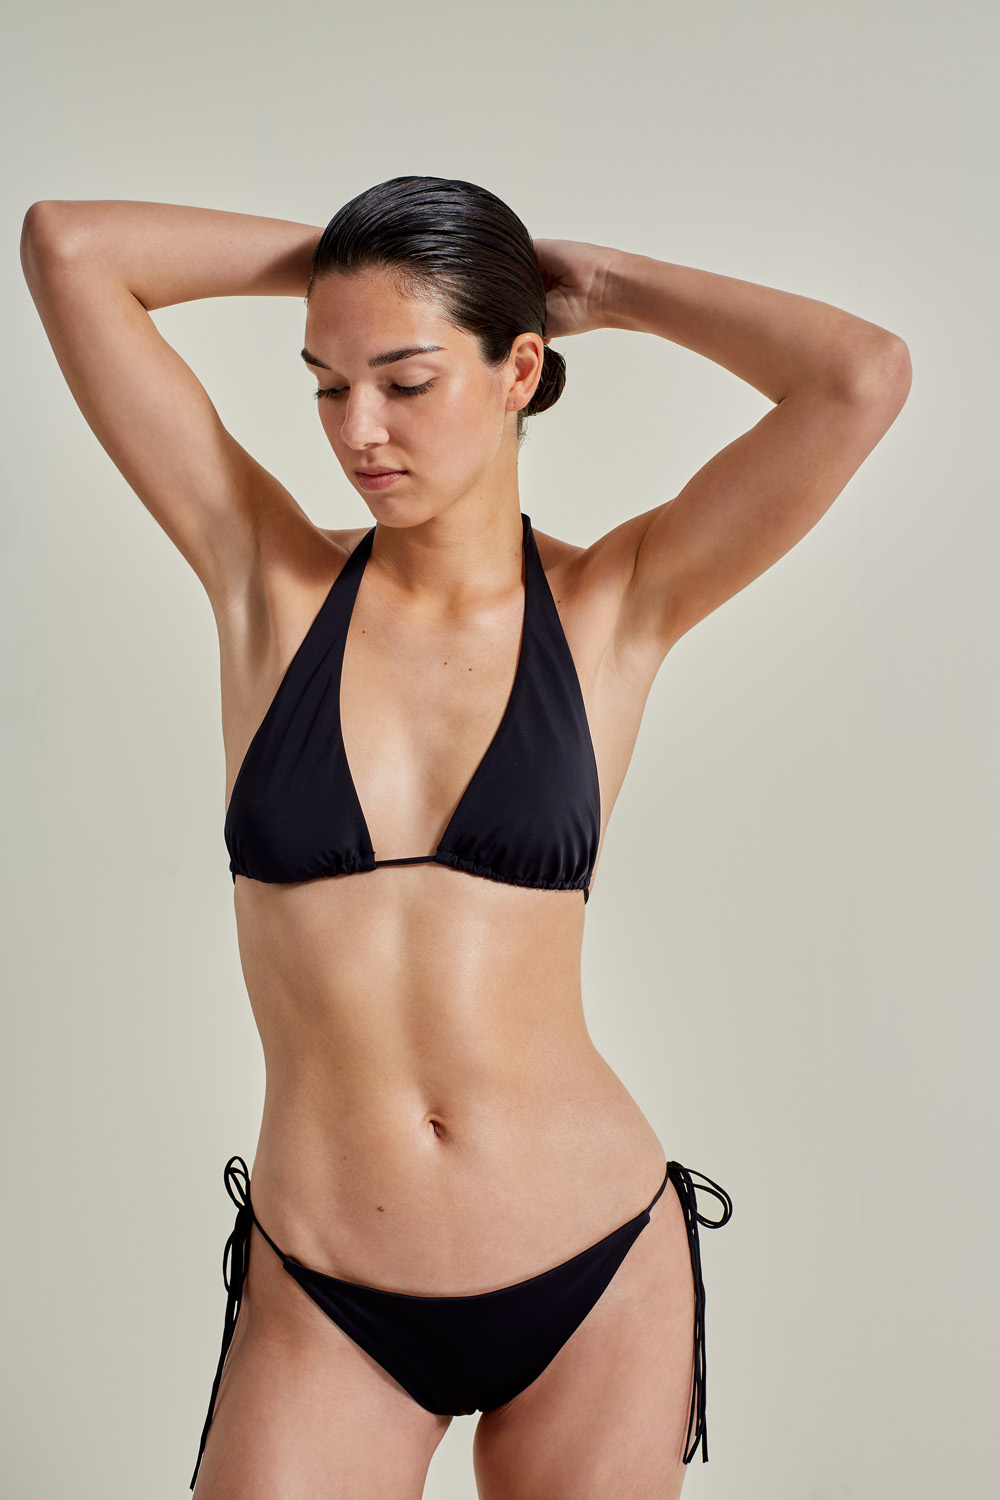 Sustainable Luxury Swimwear / Ropa de baño sostenible, eco bikini / bikini ecológico. Hermigua + St.John in black, by NOW_THEN